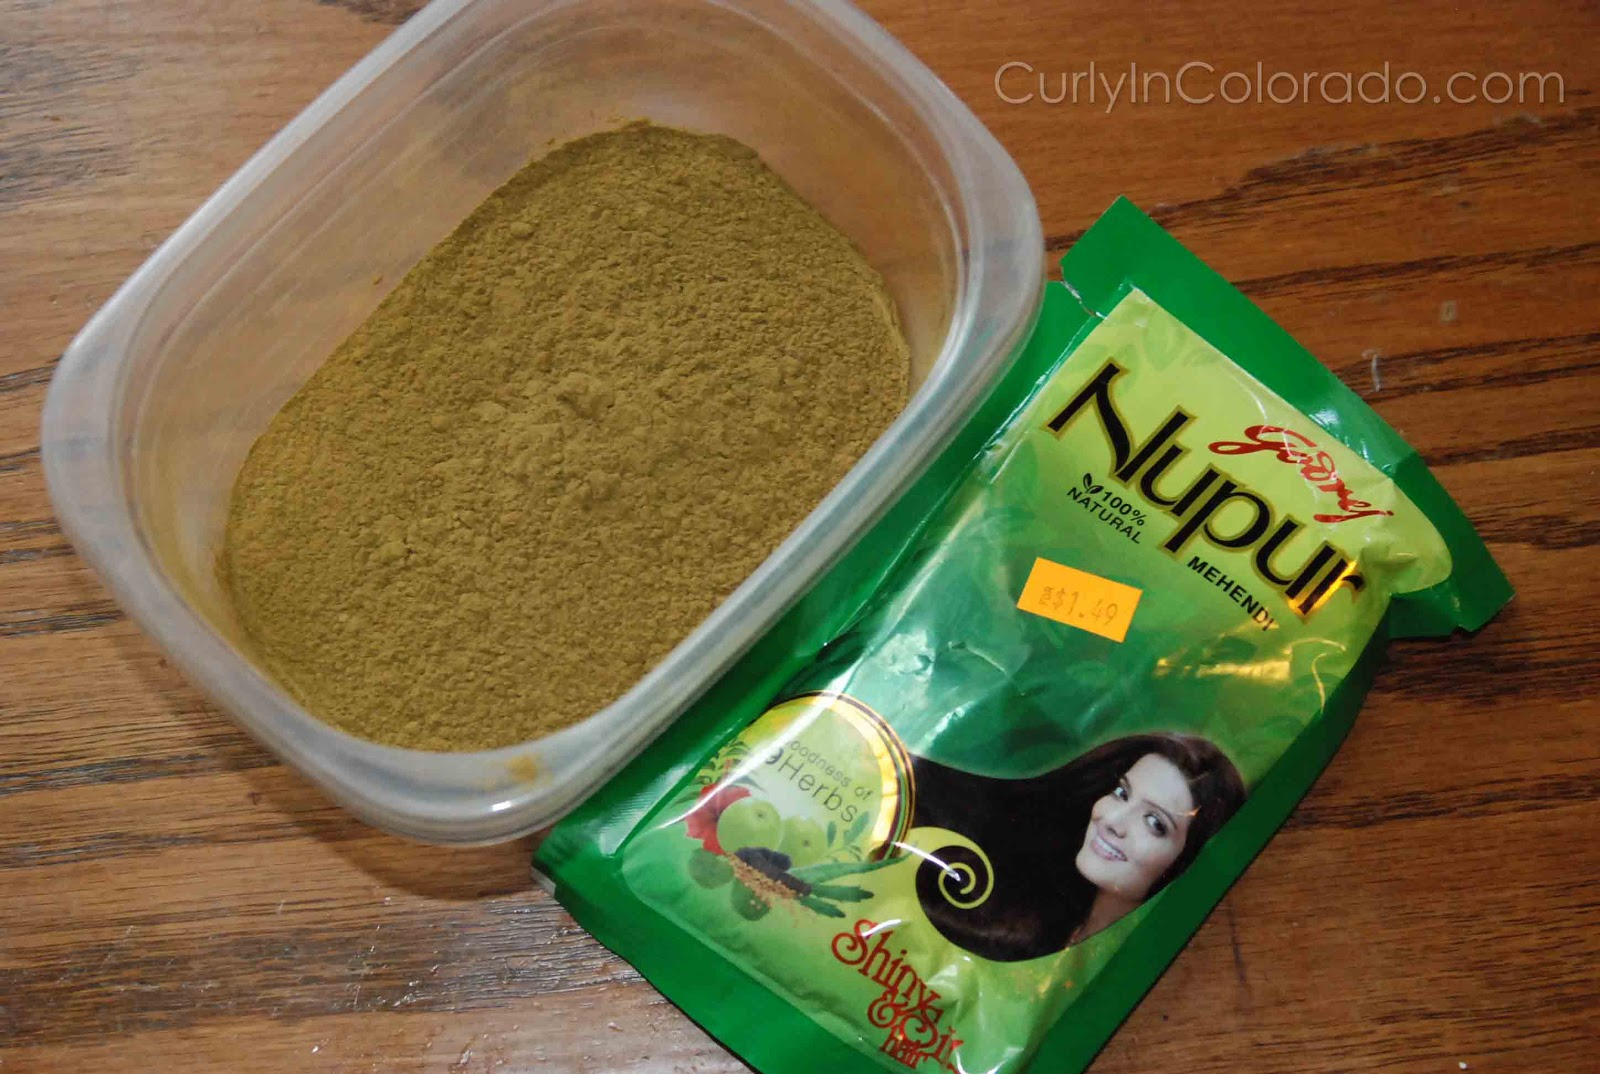 Godrej Nupur Henna Review Curly In Colorado